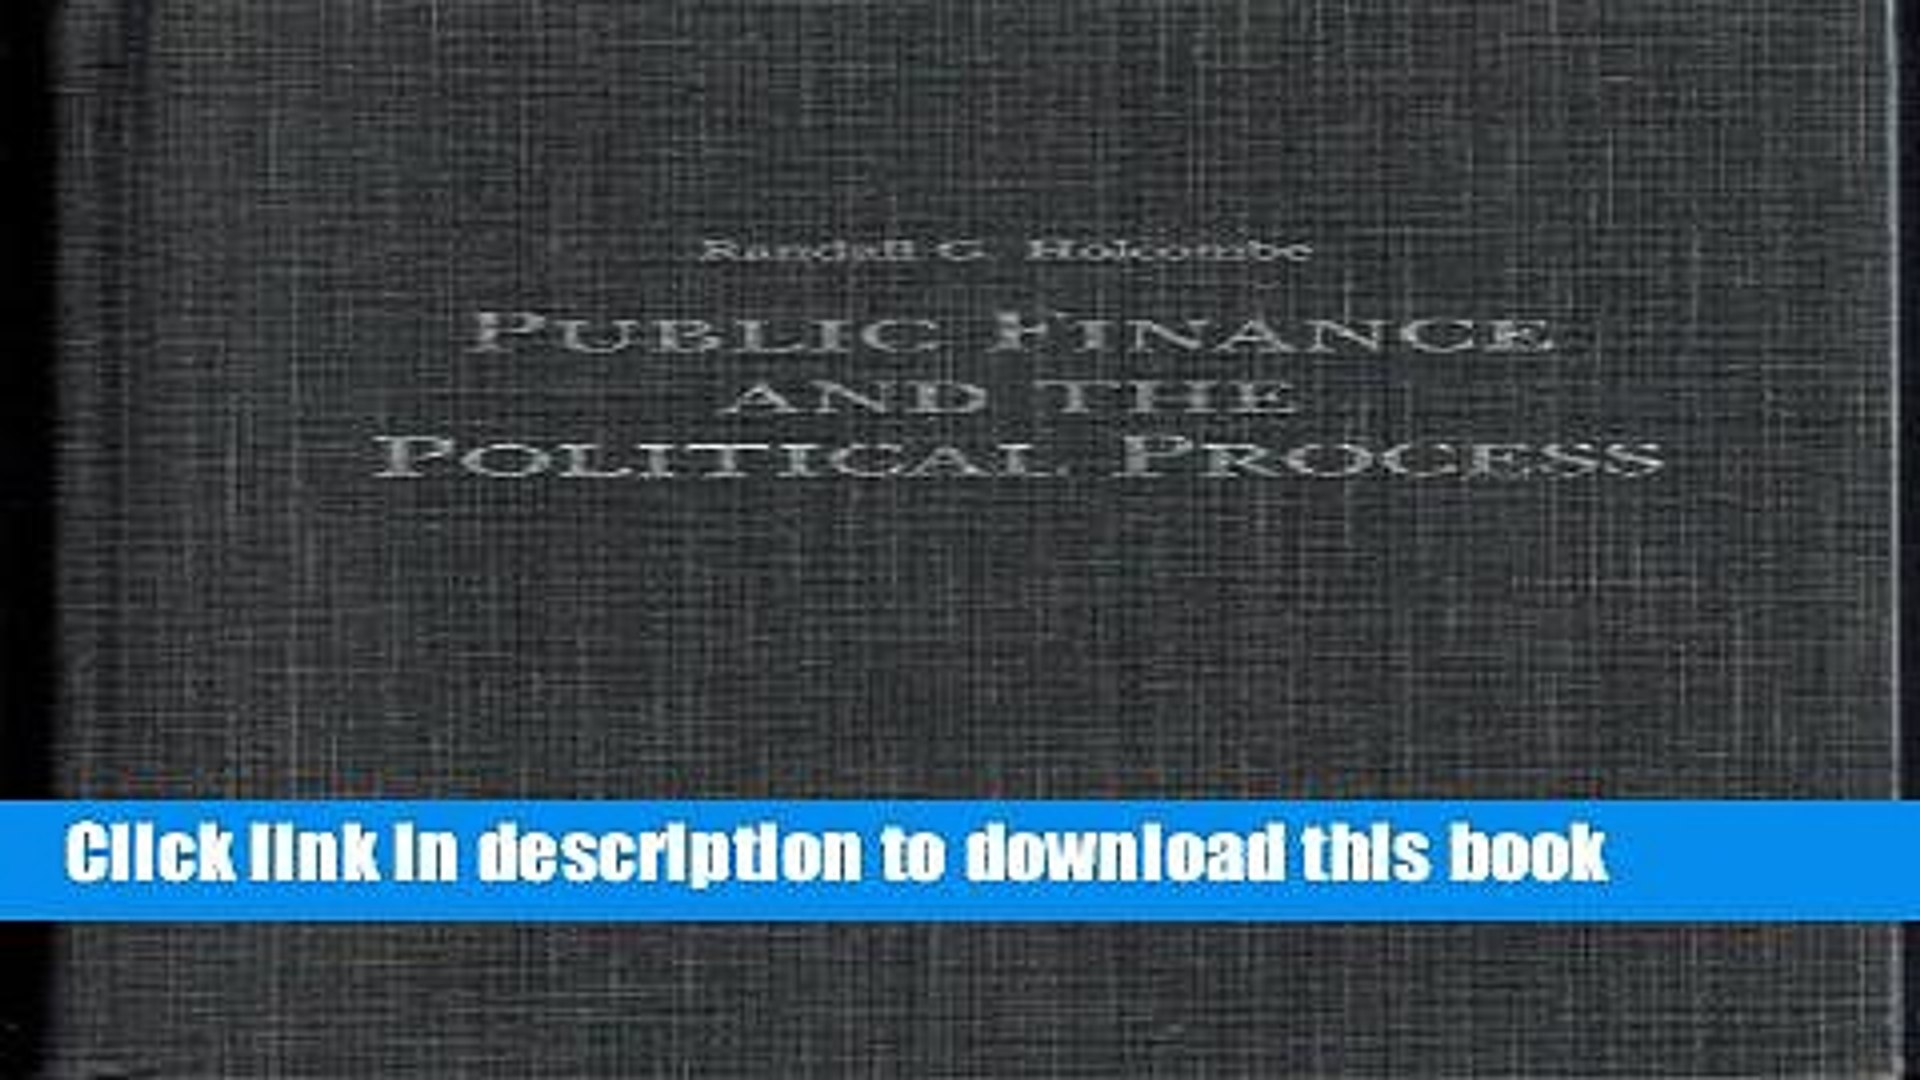 [Download] Public Finance and the Political Process (Political and Social Economy Series)  Read